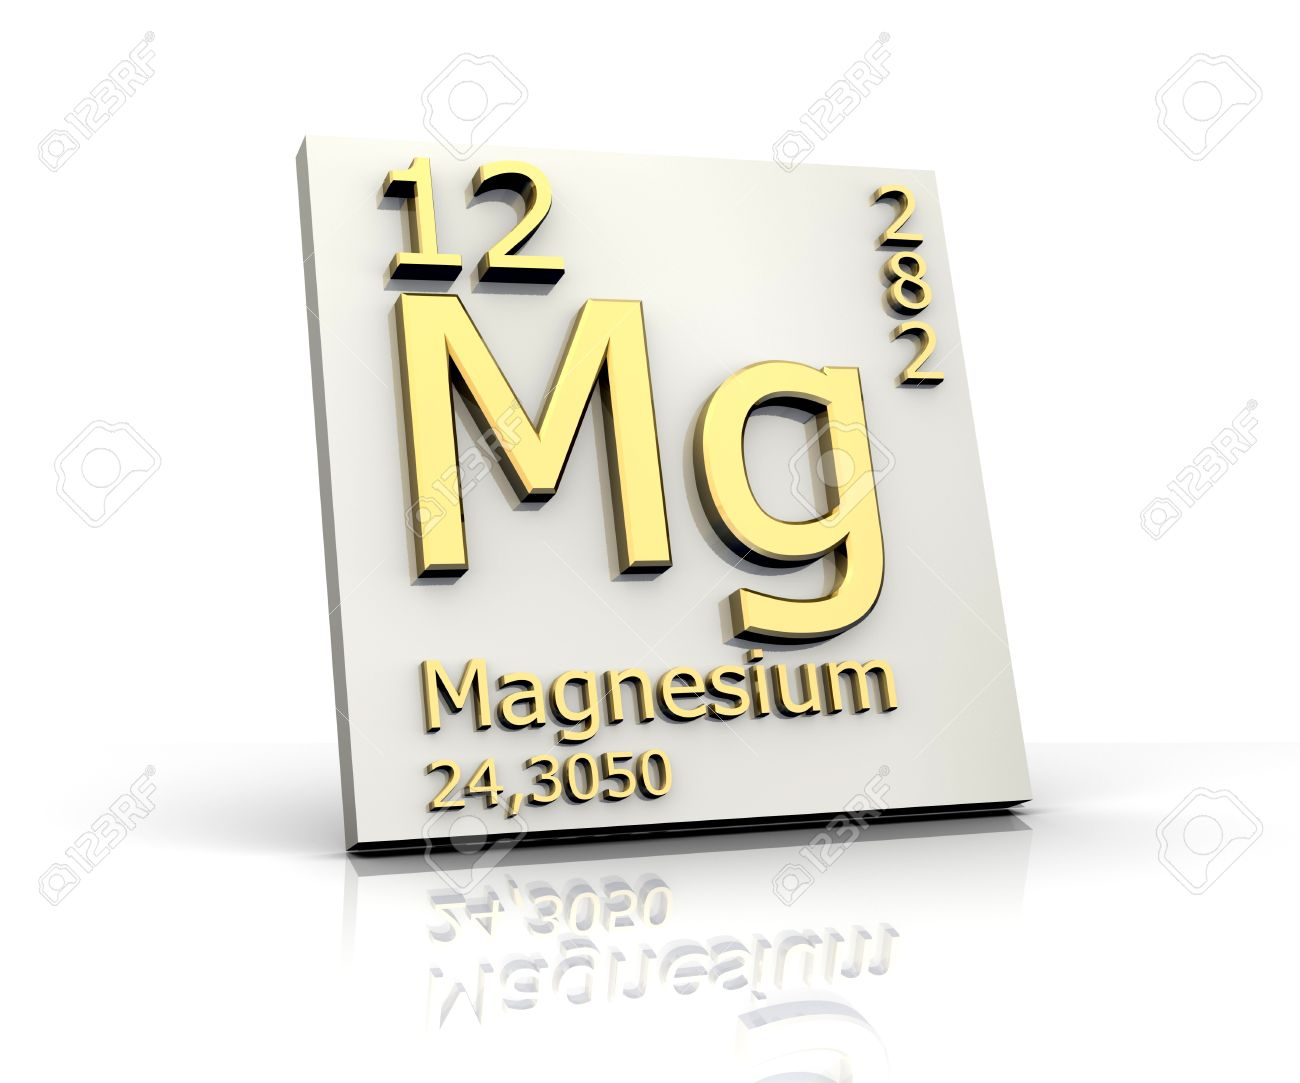 Magnesium form periodic table of elements stock photo picture and magnesium form periodic table of elements stock photo 4315591 urtaz Images